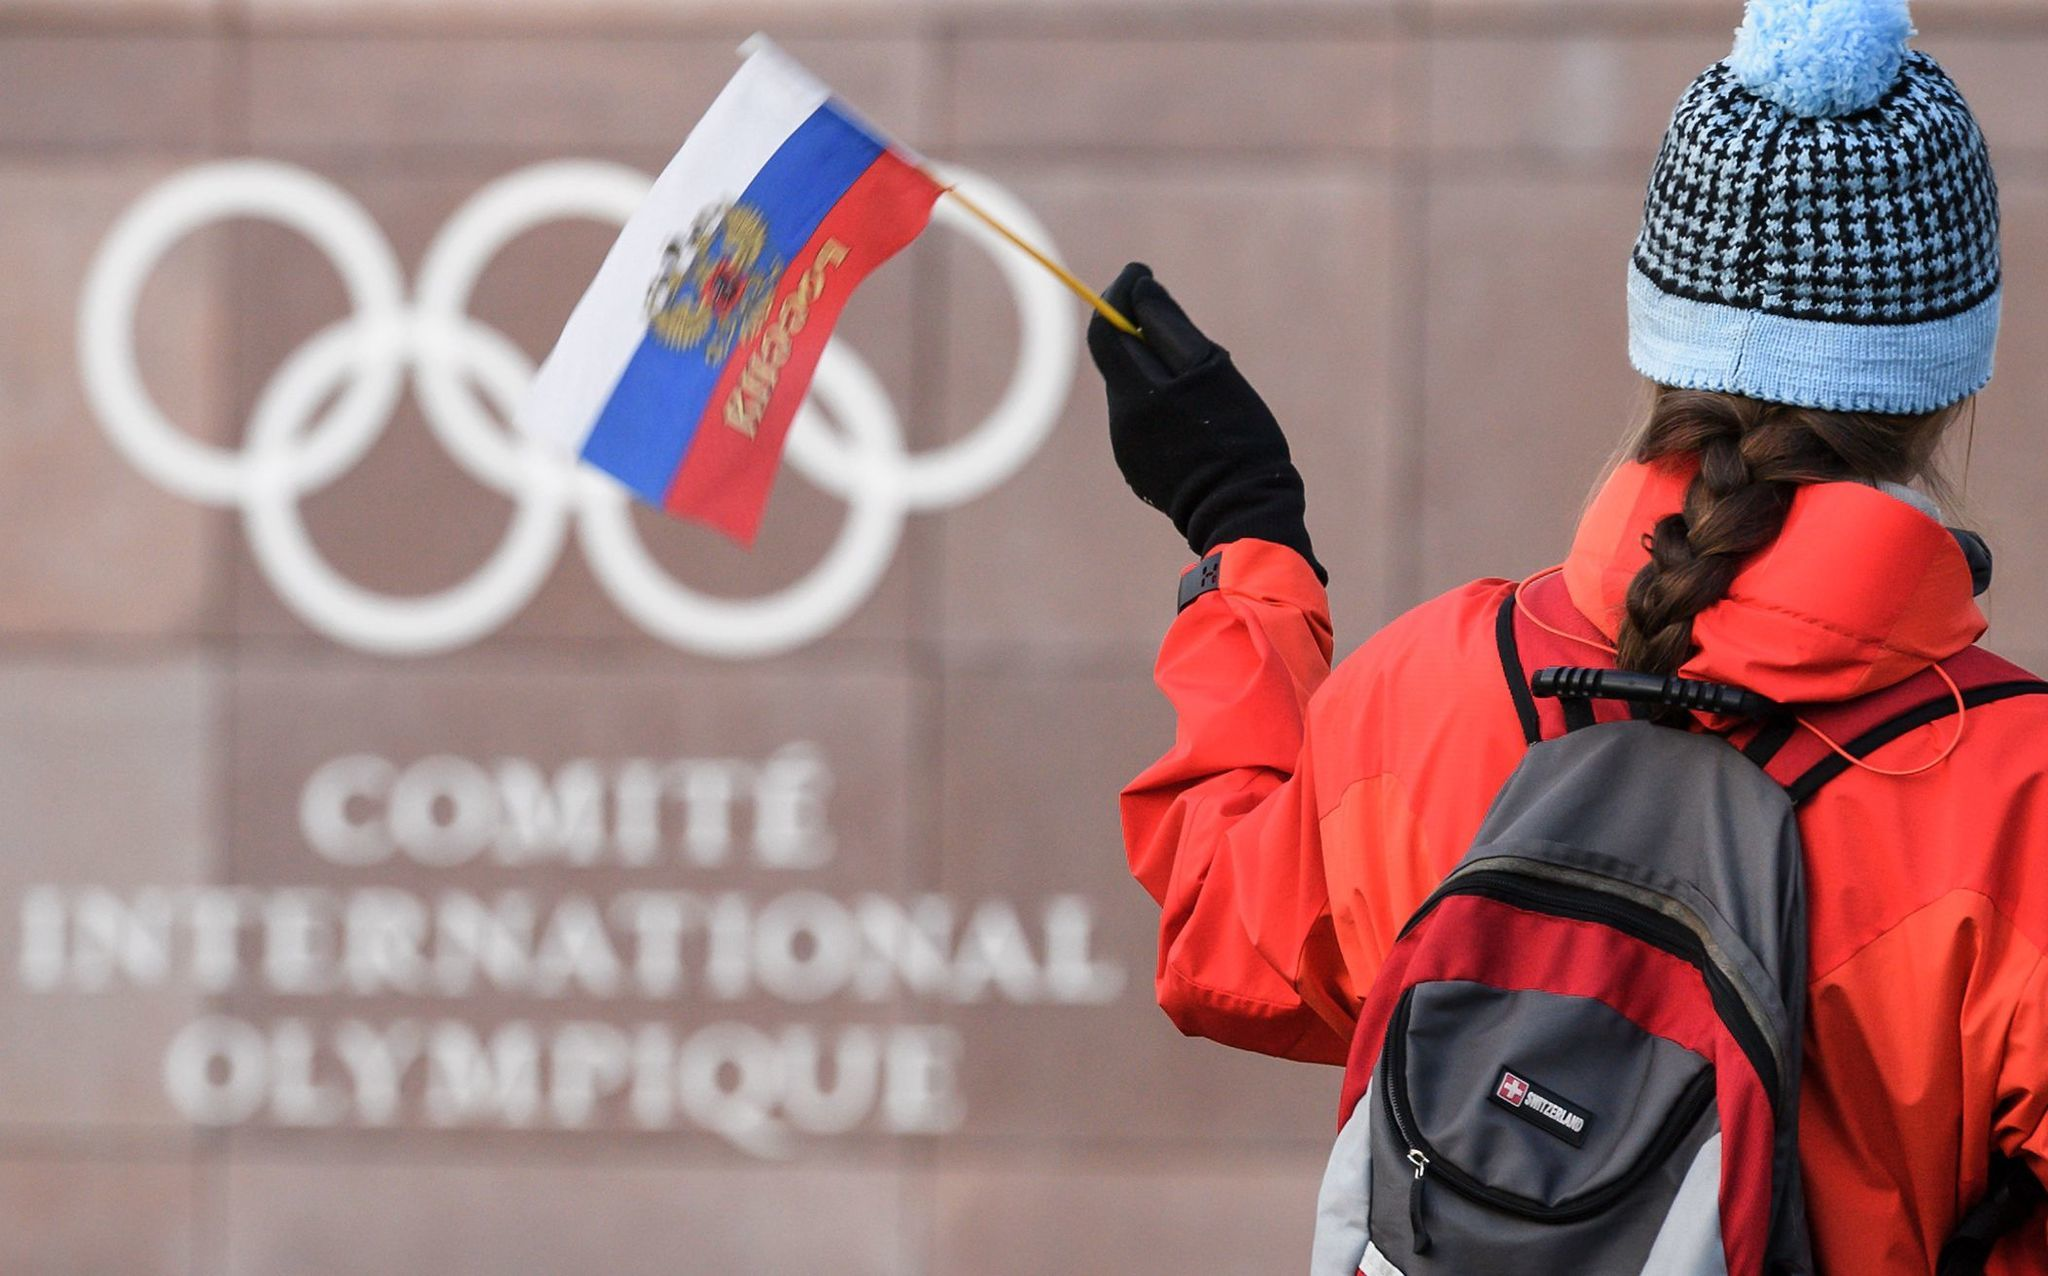 Thể thao - Sports Reactions vary to Russia Winter Olympic ban